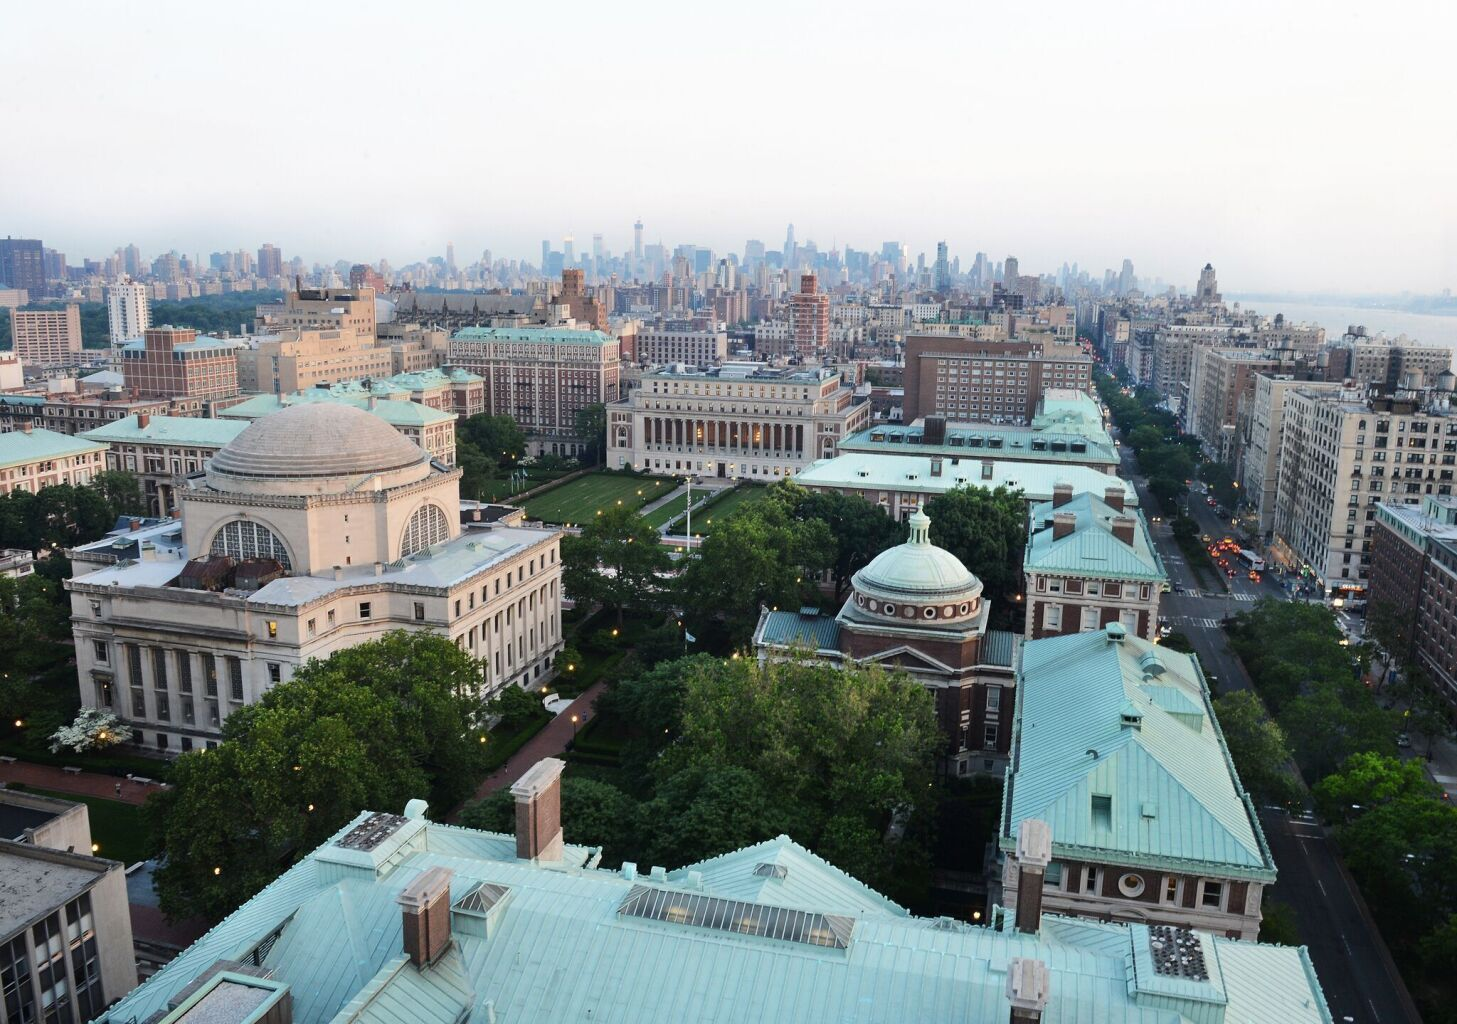 Aerial view of Columbia University campus in New York City.